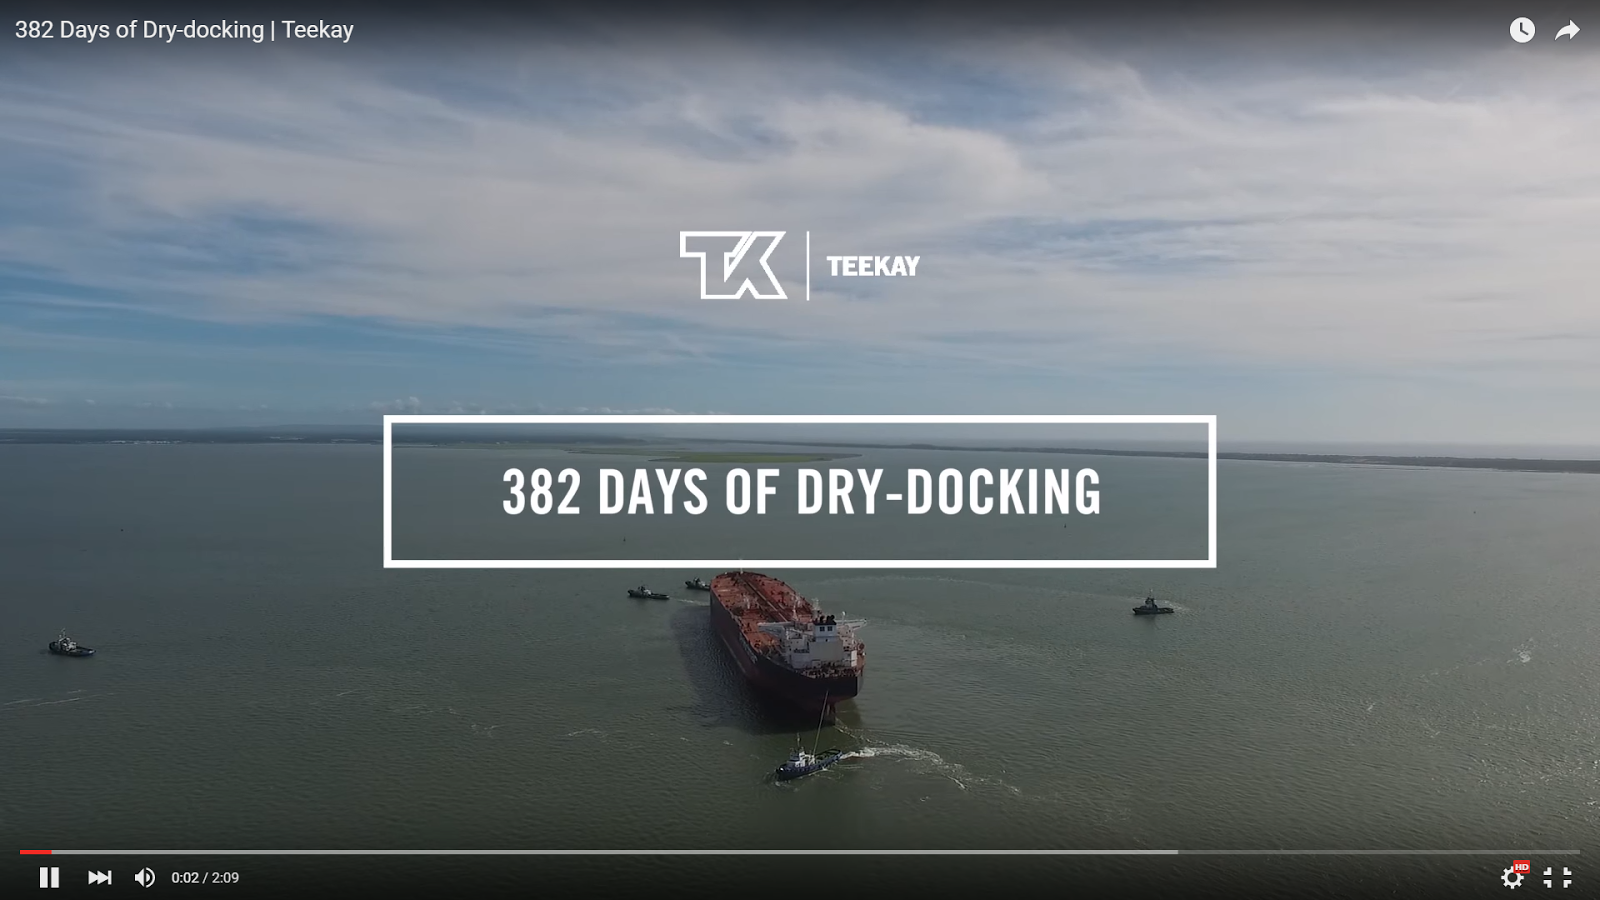 WATCH: A Glimpse into the Dry-docking Process at Teekay (Video)